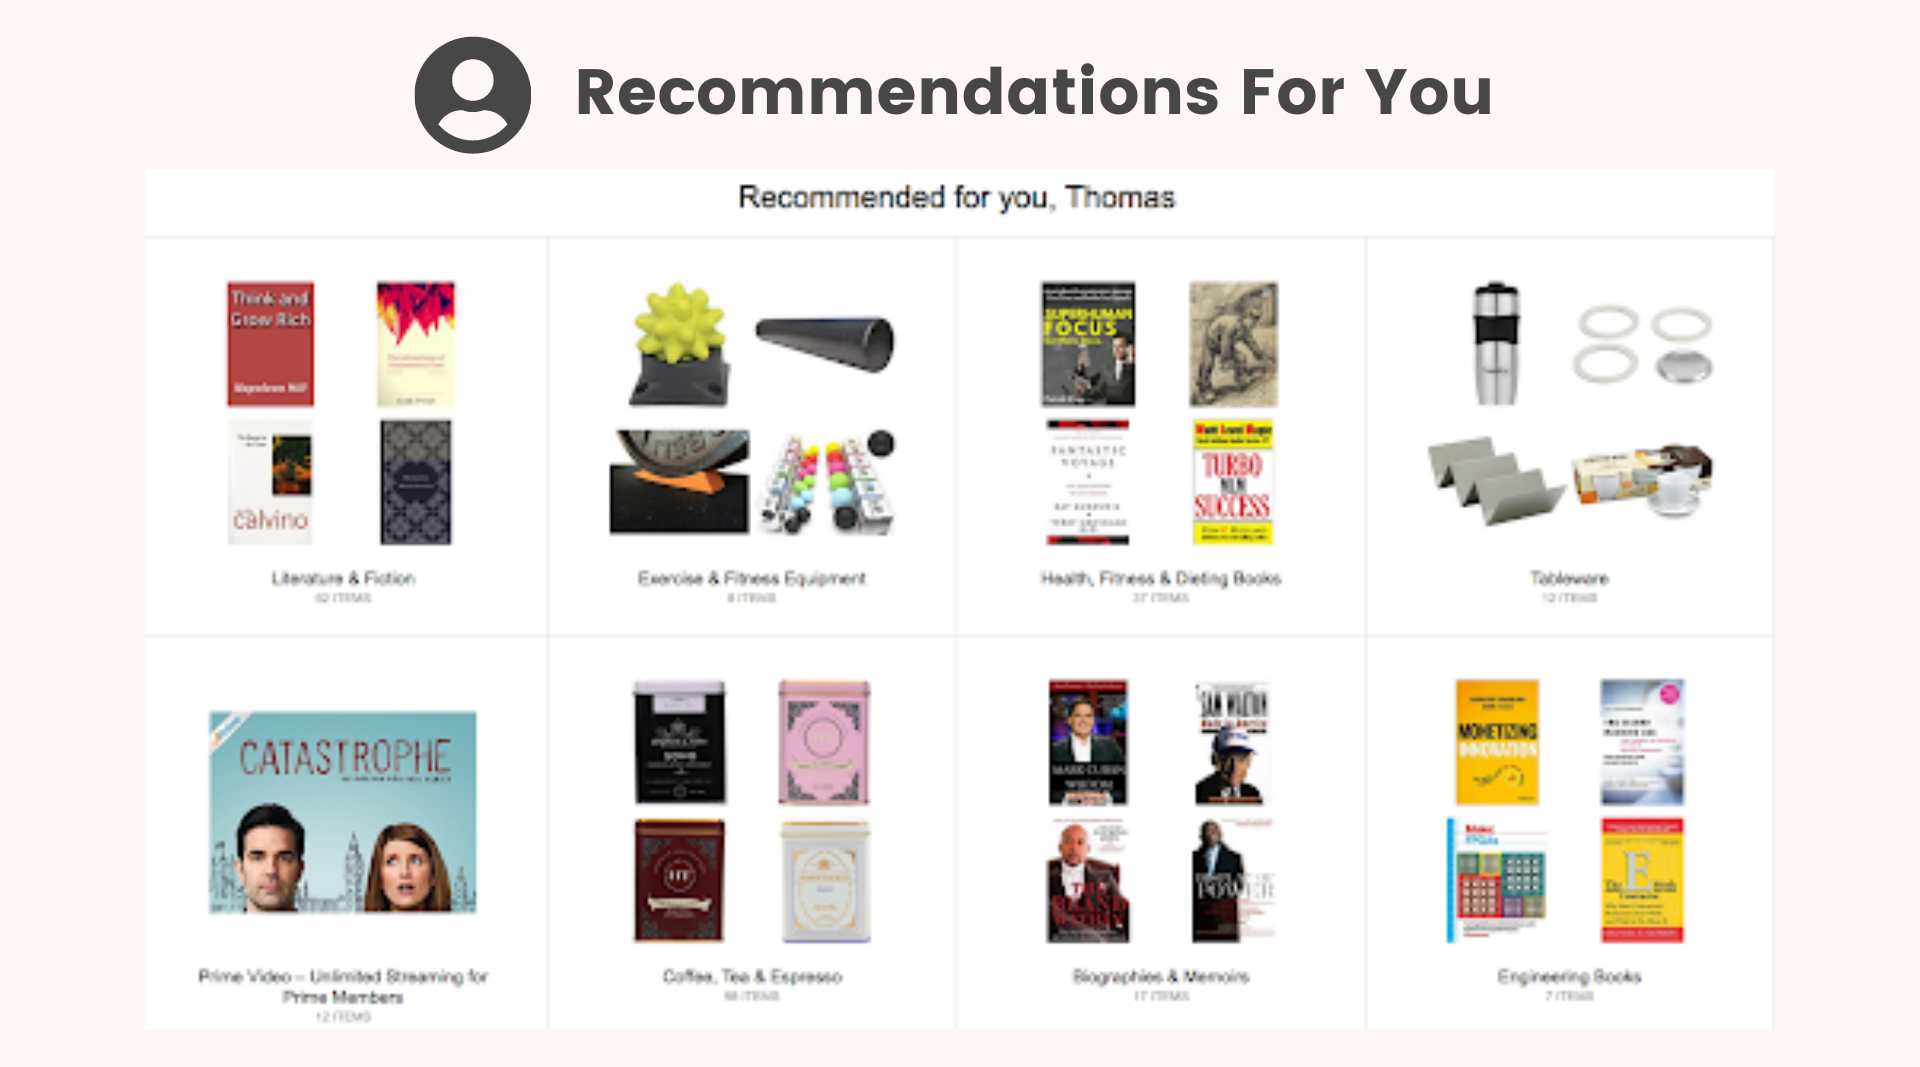 Amazon recommendations for you